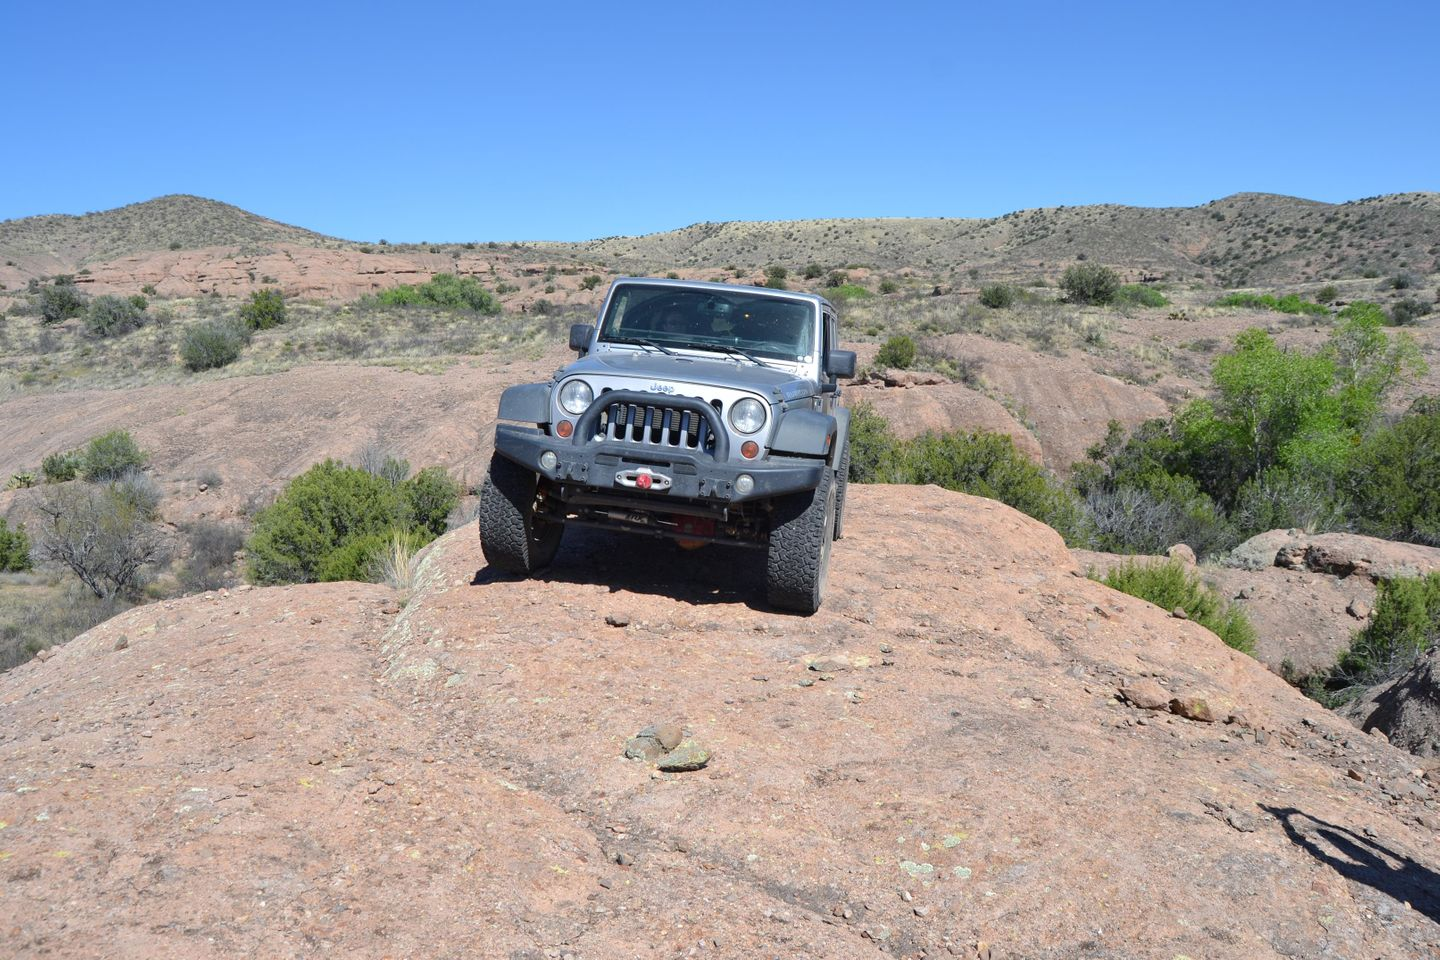 Jackson Cabin/Muleshoe Ranch Road - Waypoint 8: Rig Rock -  Public Land